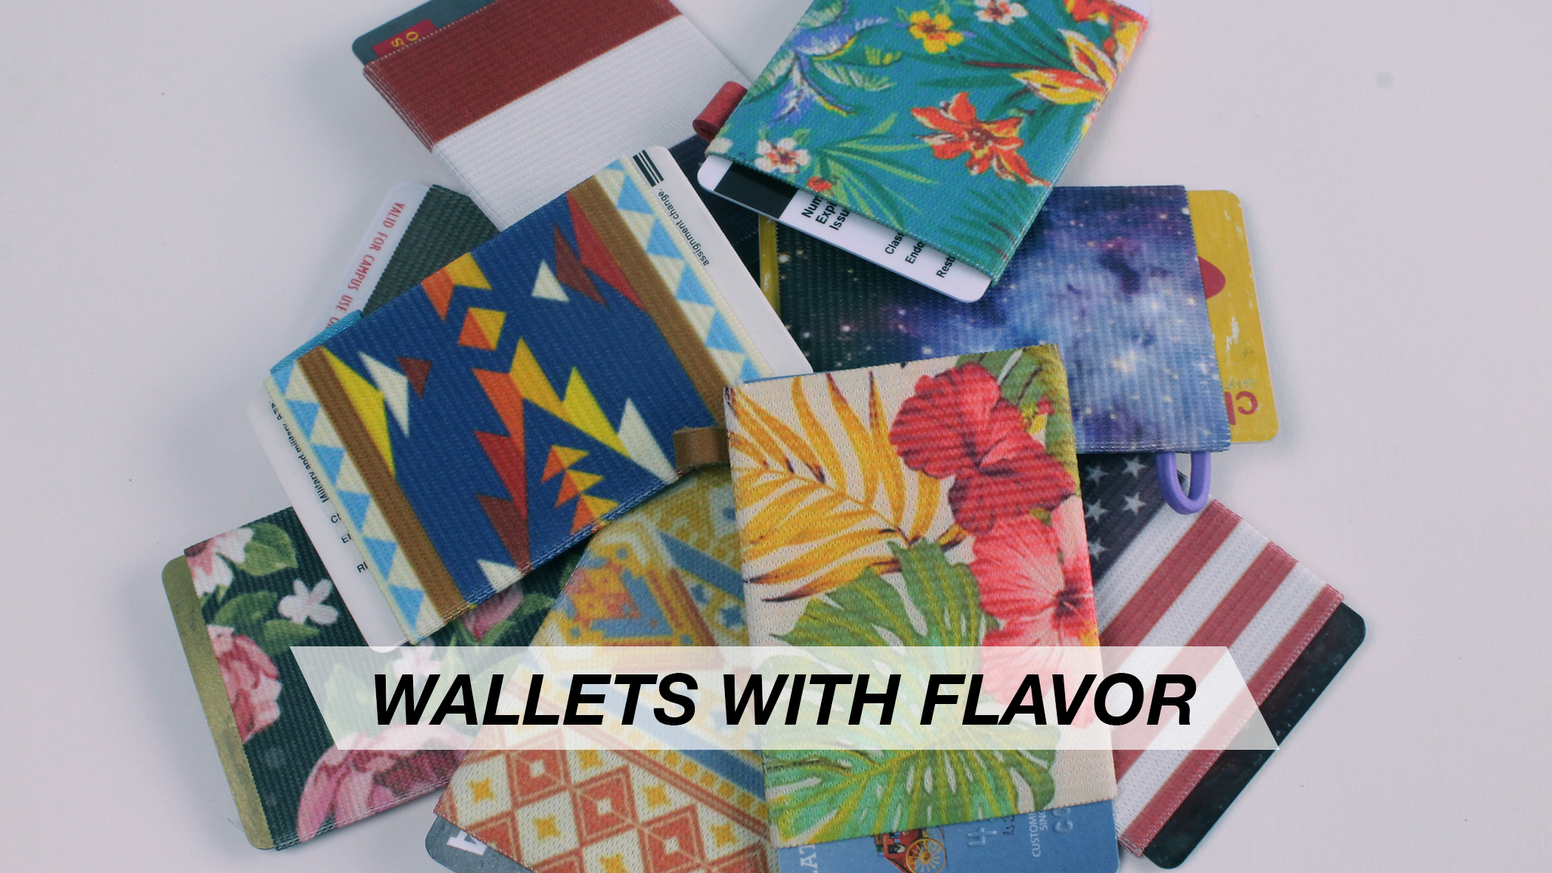 Slim, elastic card holders with an UNLIMITED amount of design possibilities. You can even customize your own!